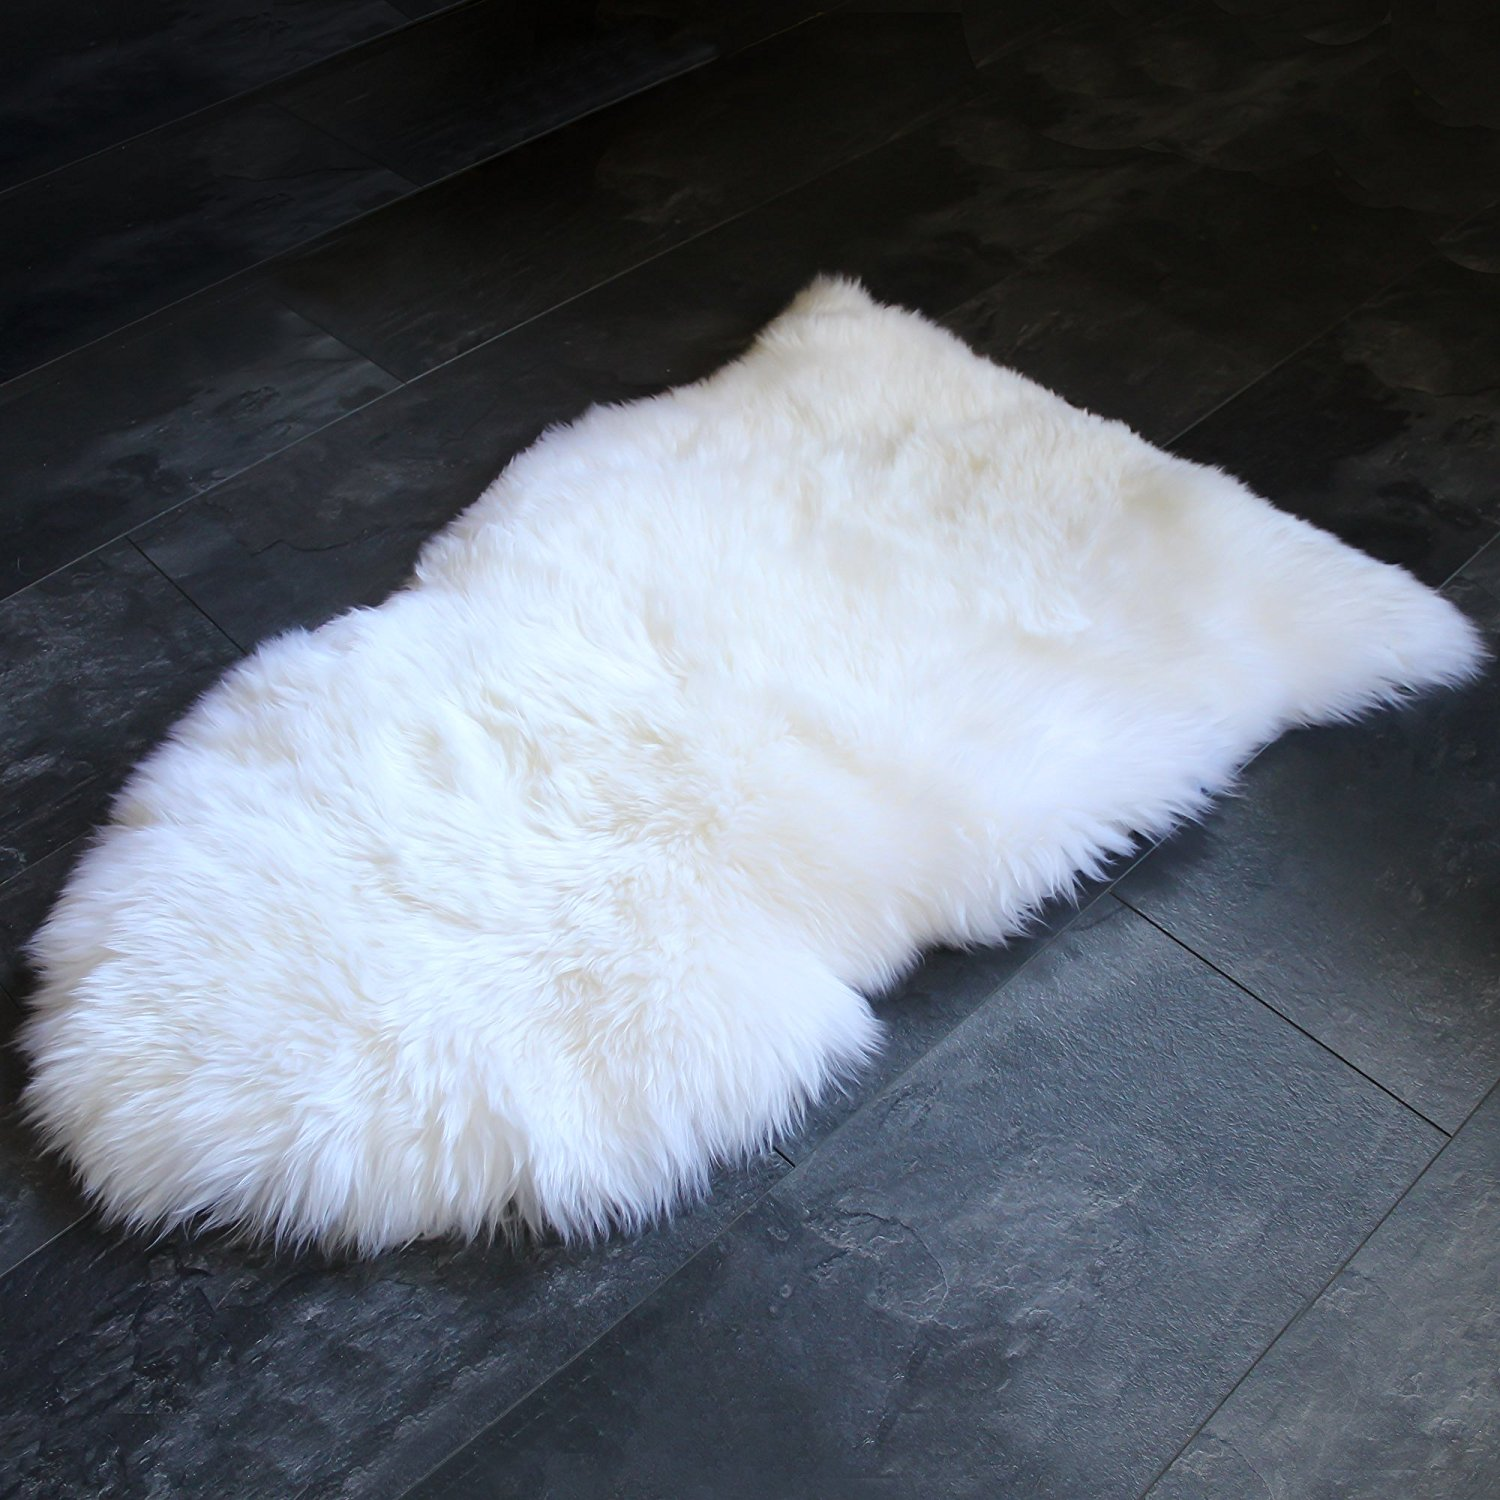 Sheepskin Rug Genuine Soft Natural Merino + Care & Cleaning Guide (2ft x 3ft White/Ivory)